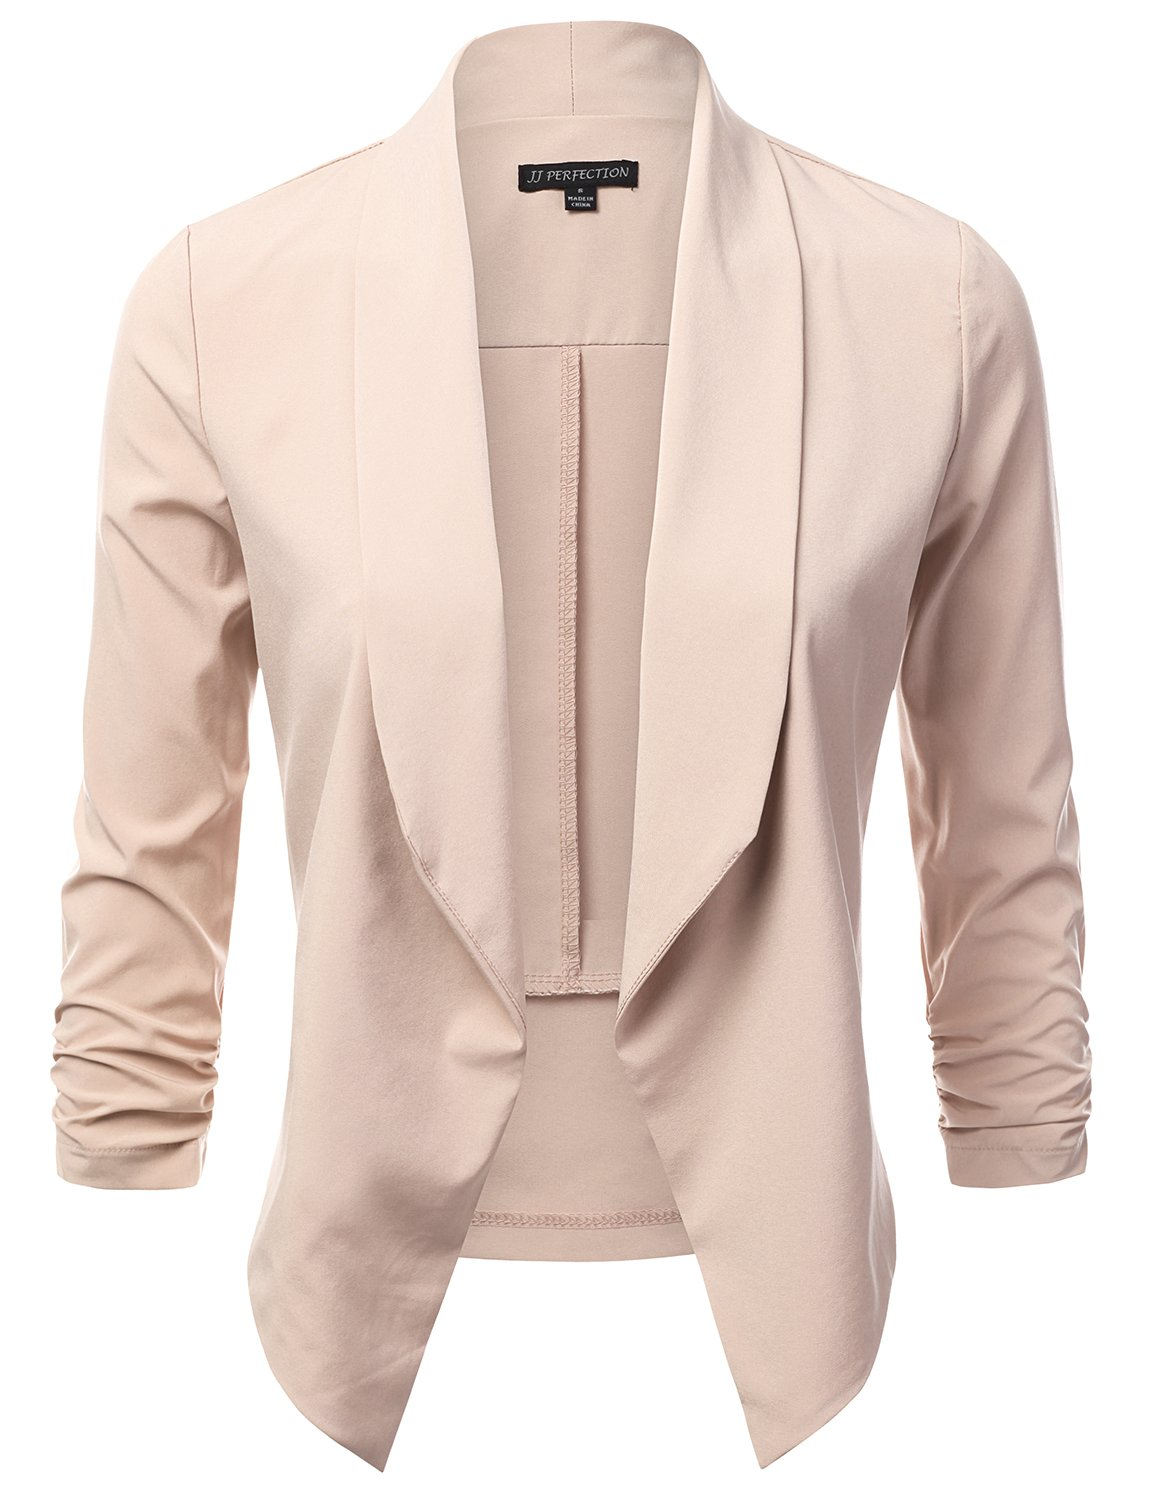 6cf4b354 Get Quotations · JJ Perfection Women's Lightweight Thin Chiffon Ruched  Sleeve Open-Front Blazer